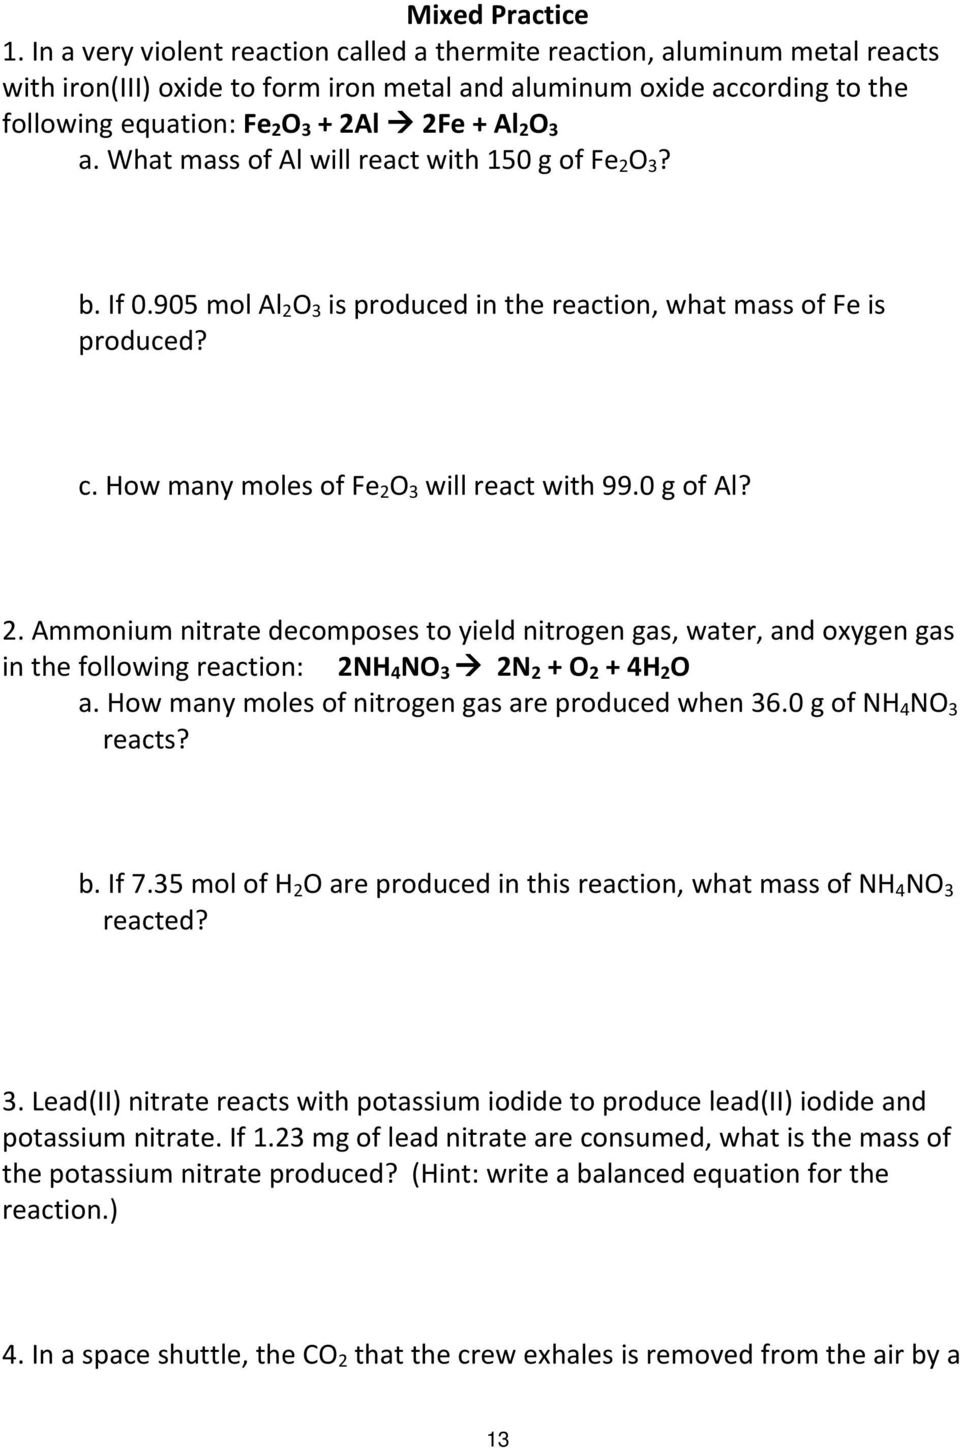 O 3 a. What mass of Al will react with 150 g of Fe 2 O 3? b. If 0.905 mol Al 2 O 3 is produced in the reaction, what mass of Fe is produced? c. How many moles of Fe 2 O 3 will react with 99.0 g of Al?